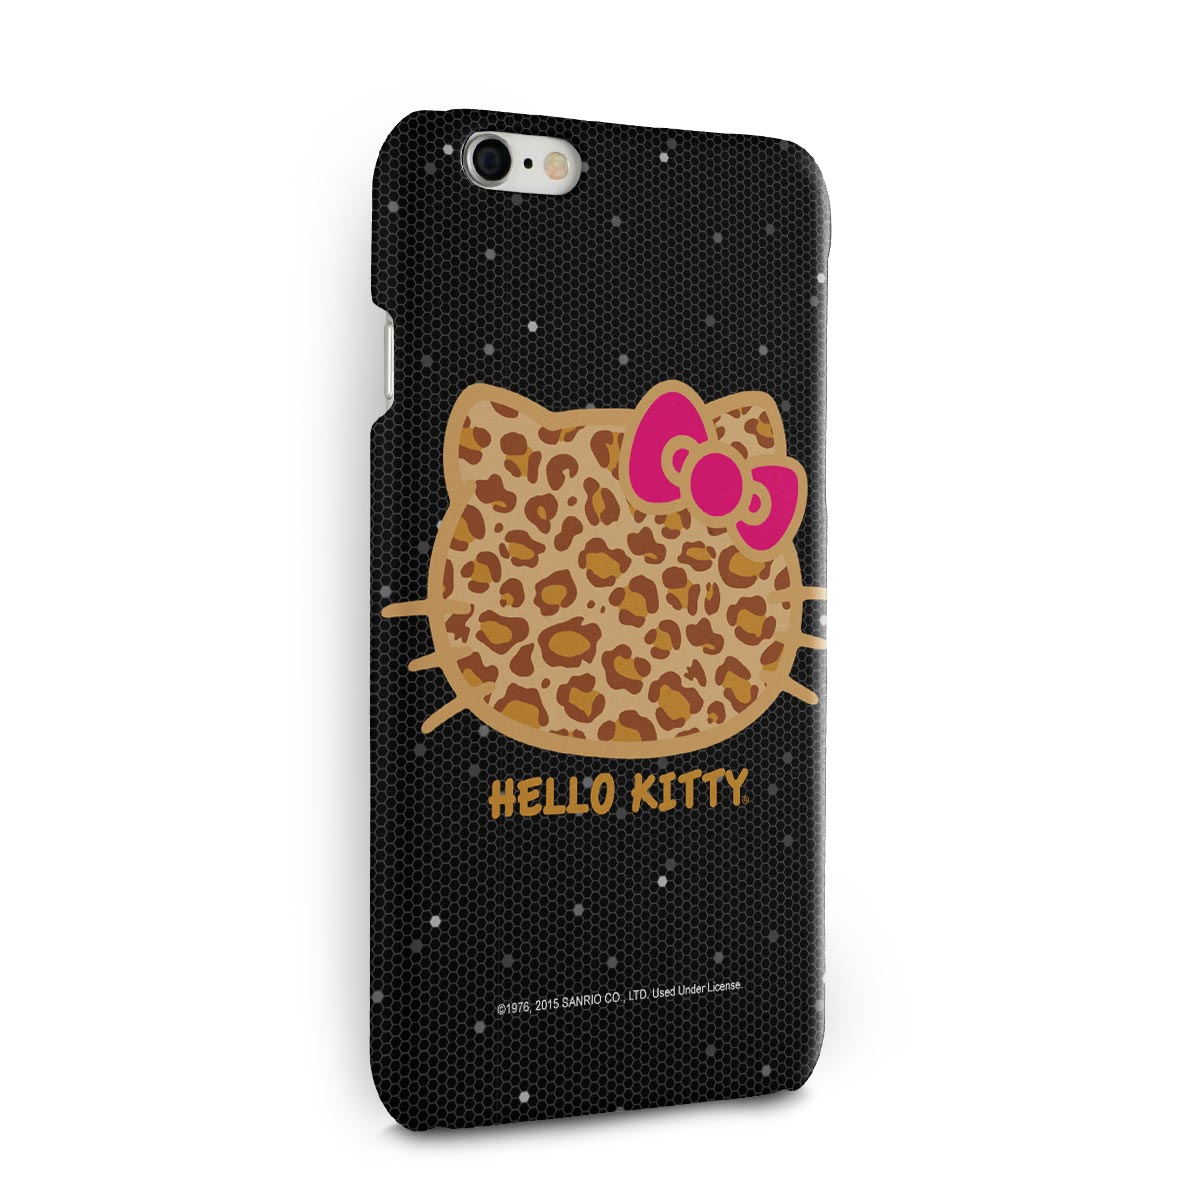 Capa para iPhone 6/6S Hello Kitty Print Fuzzy